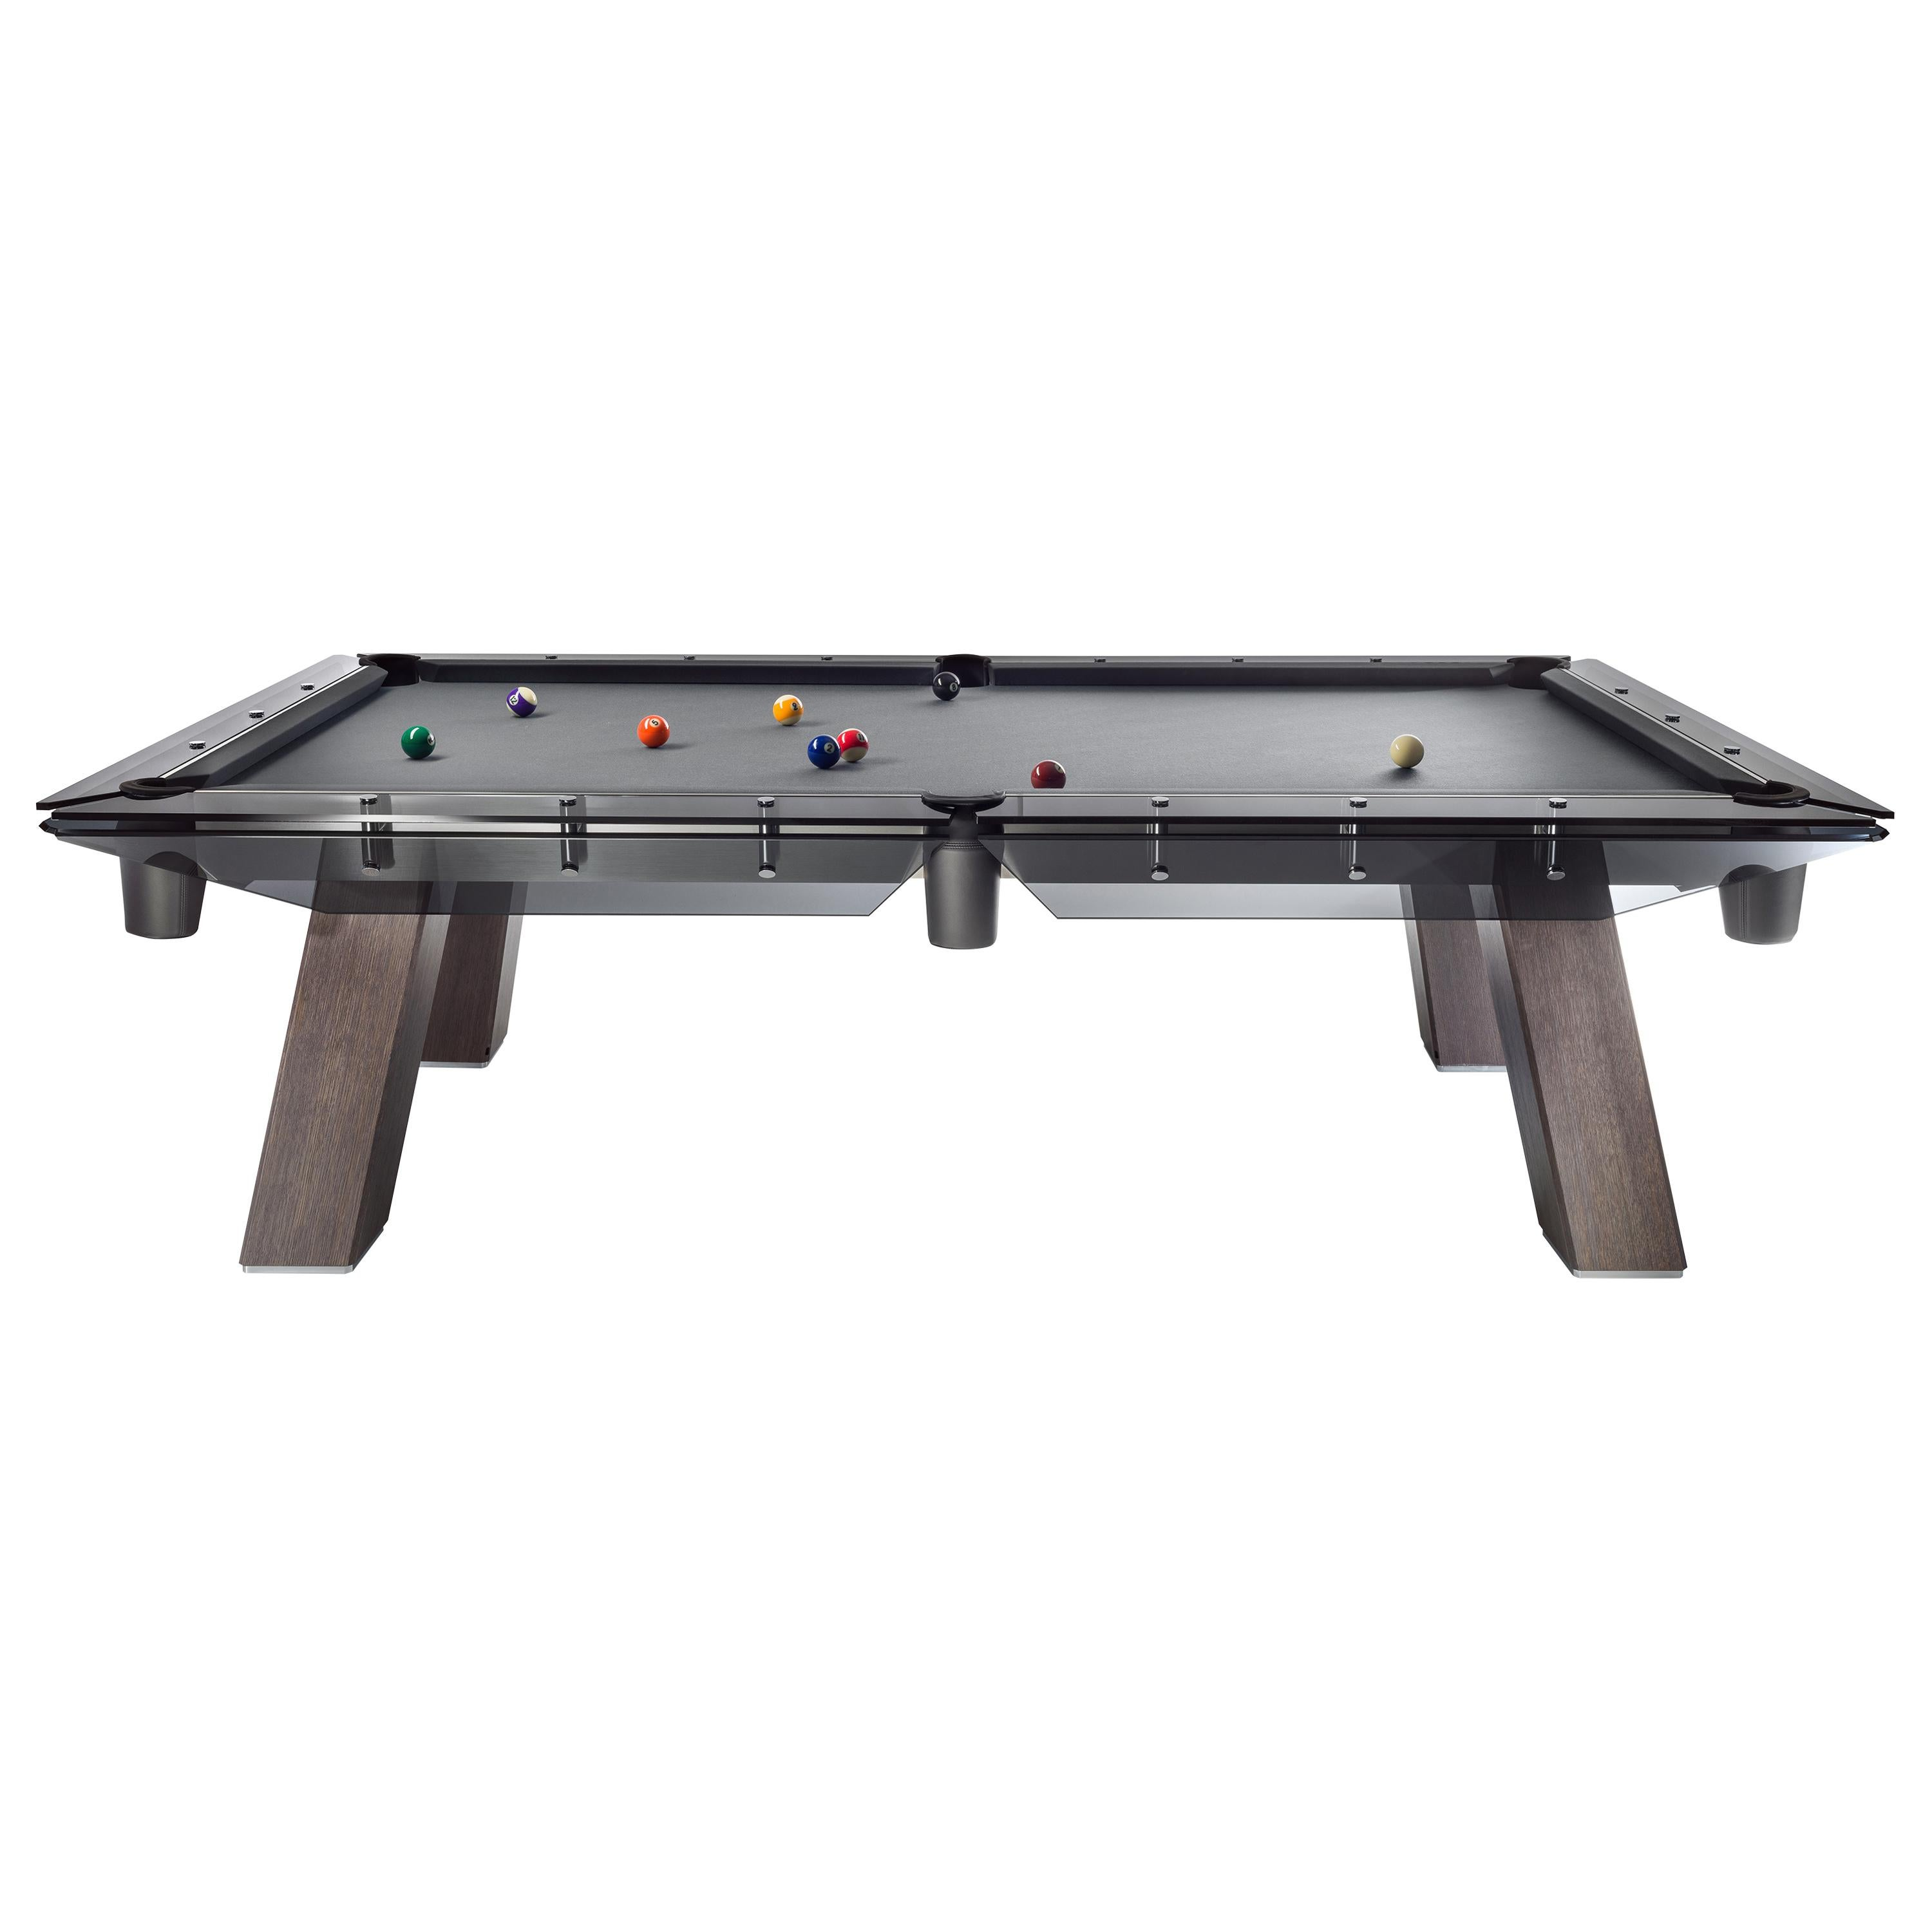 Filotto Wood Edition Pool Table with Dark Oak Legs and Smoked Glass by Impatia